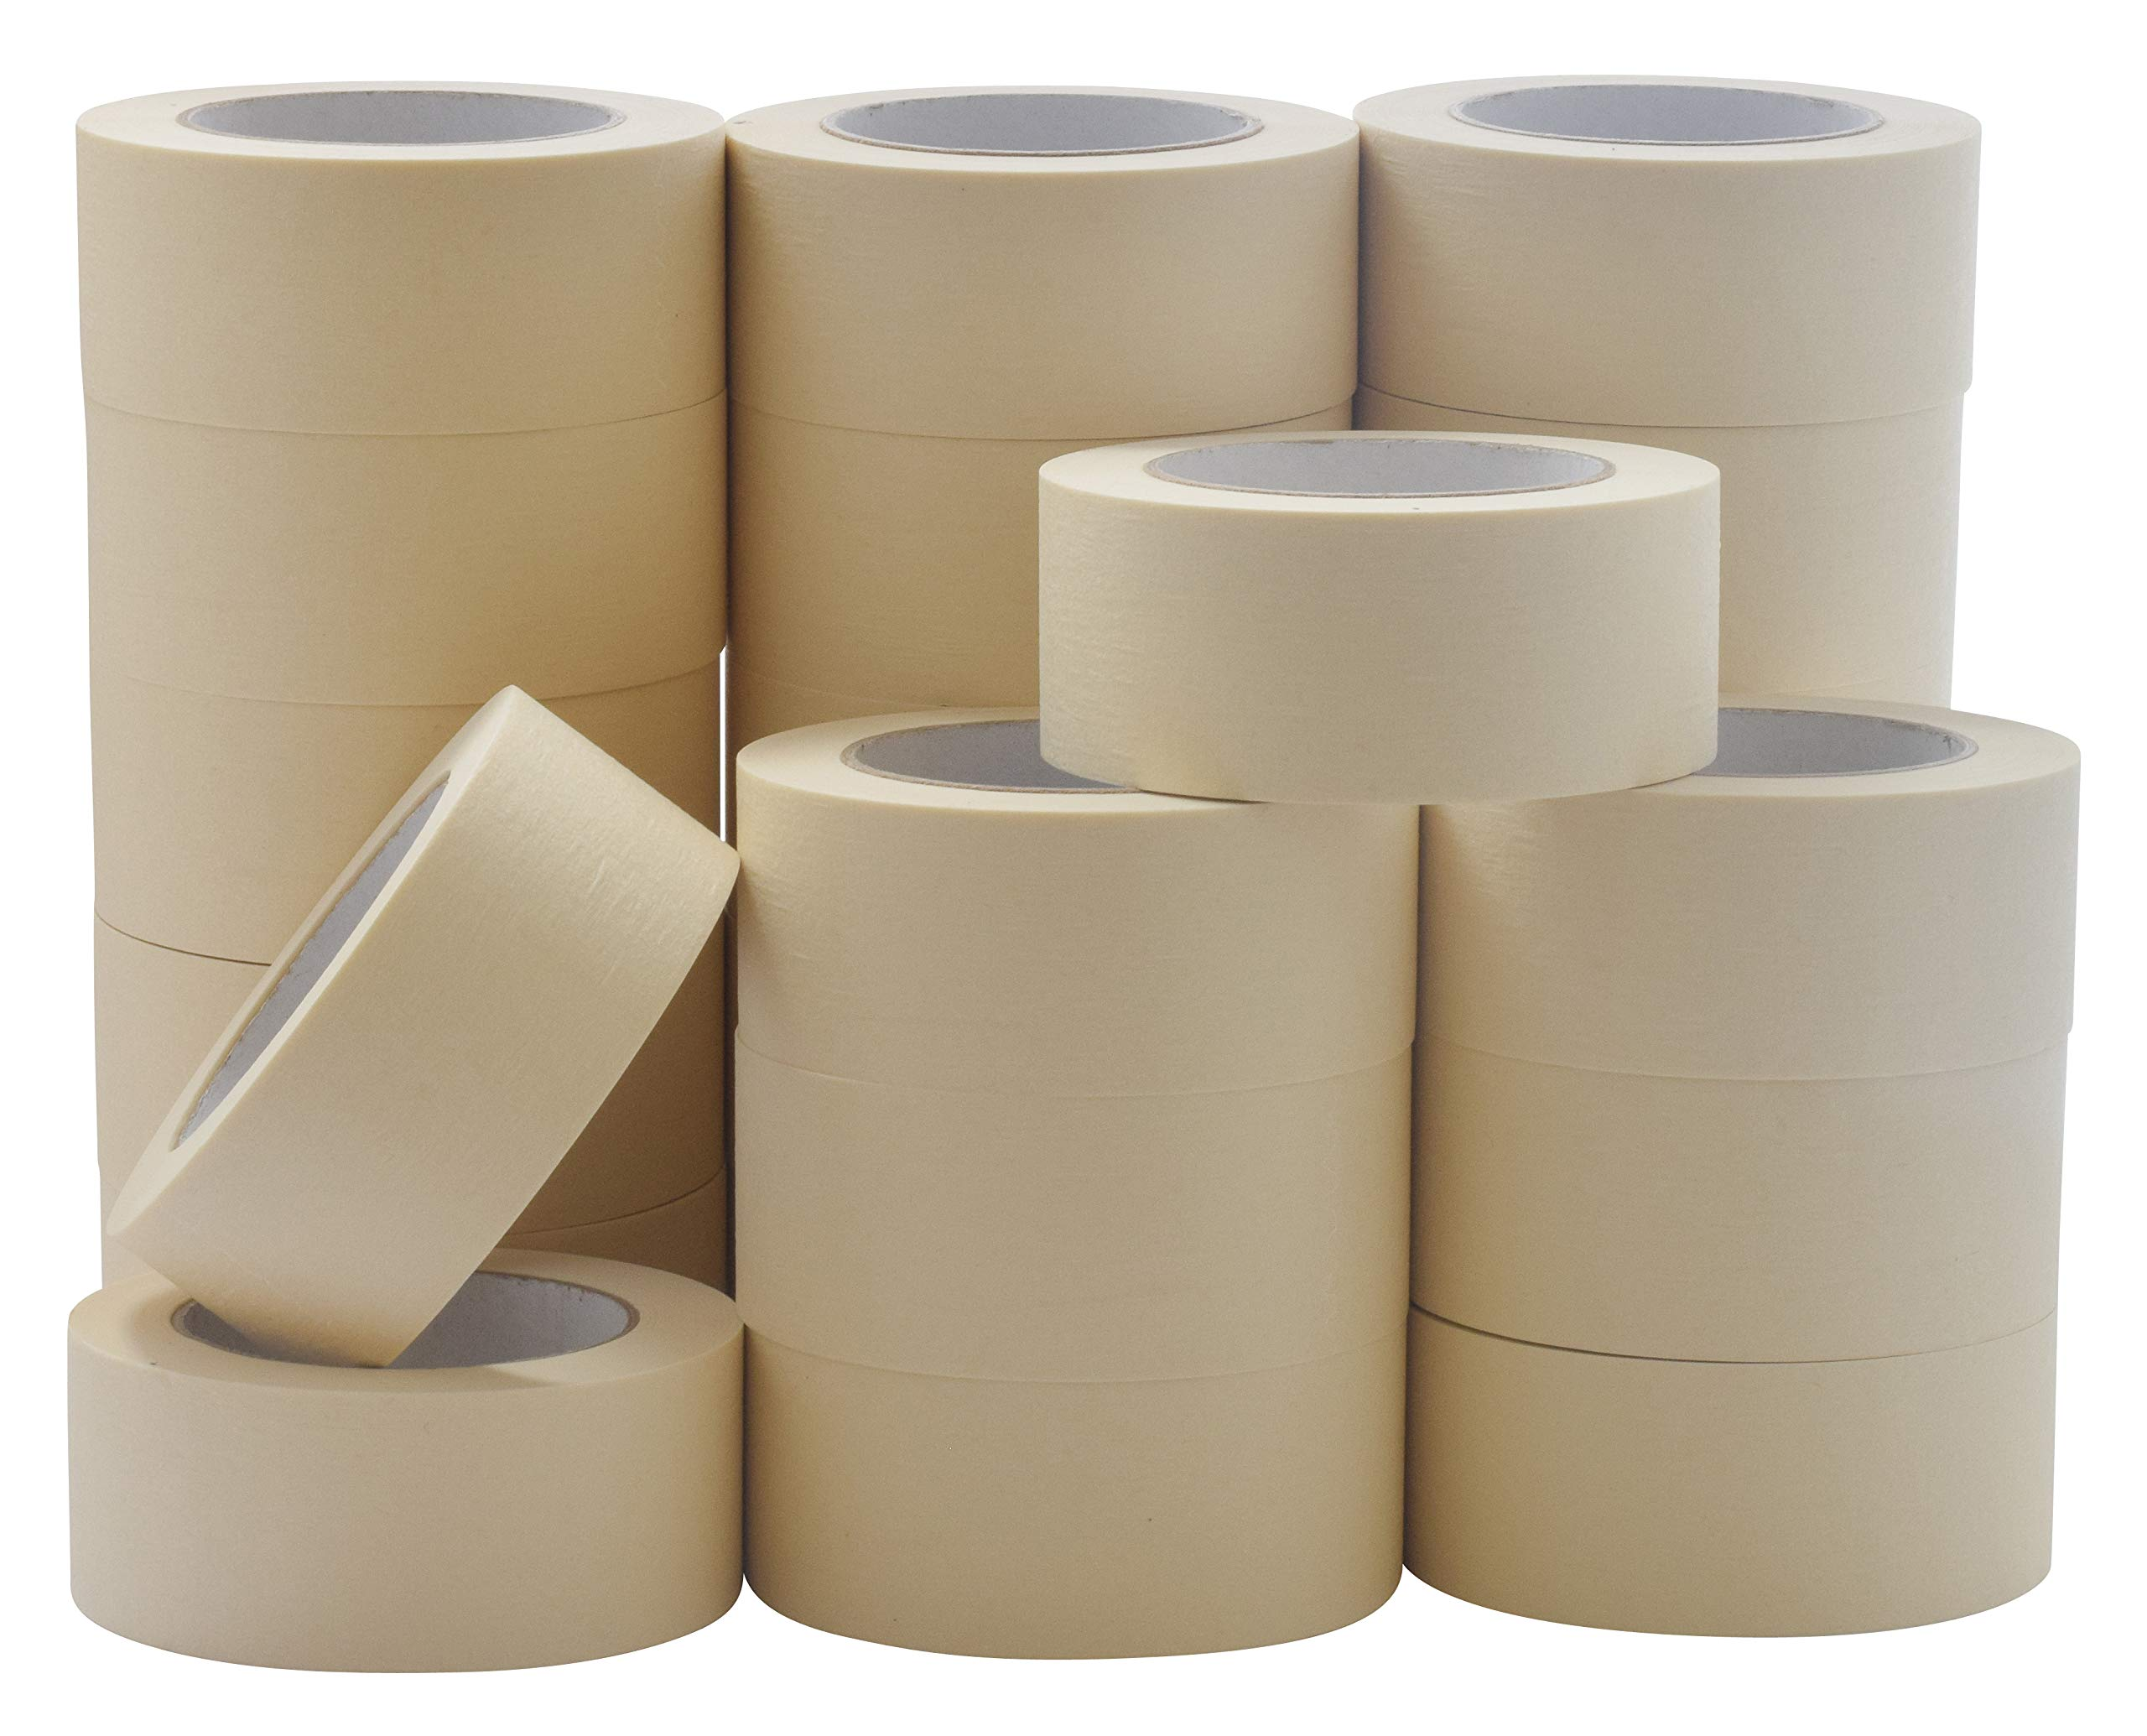 JAK Industrial Masking Tape for General Purpose / Painting - CASE of 24 - 2'' x 60 yards per roll. (48mm x 55m) by JAK Industrial